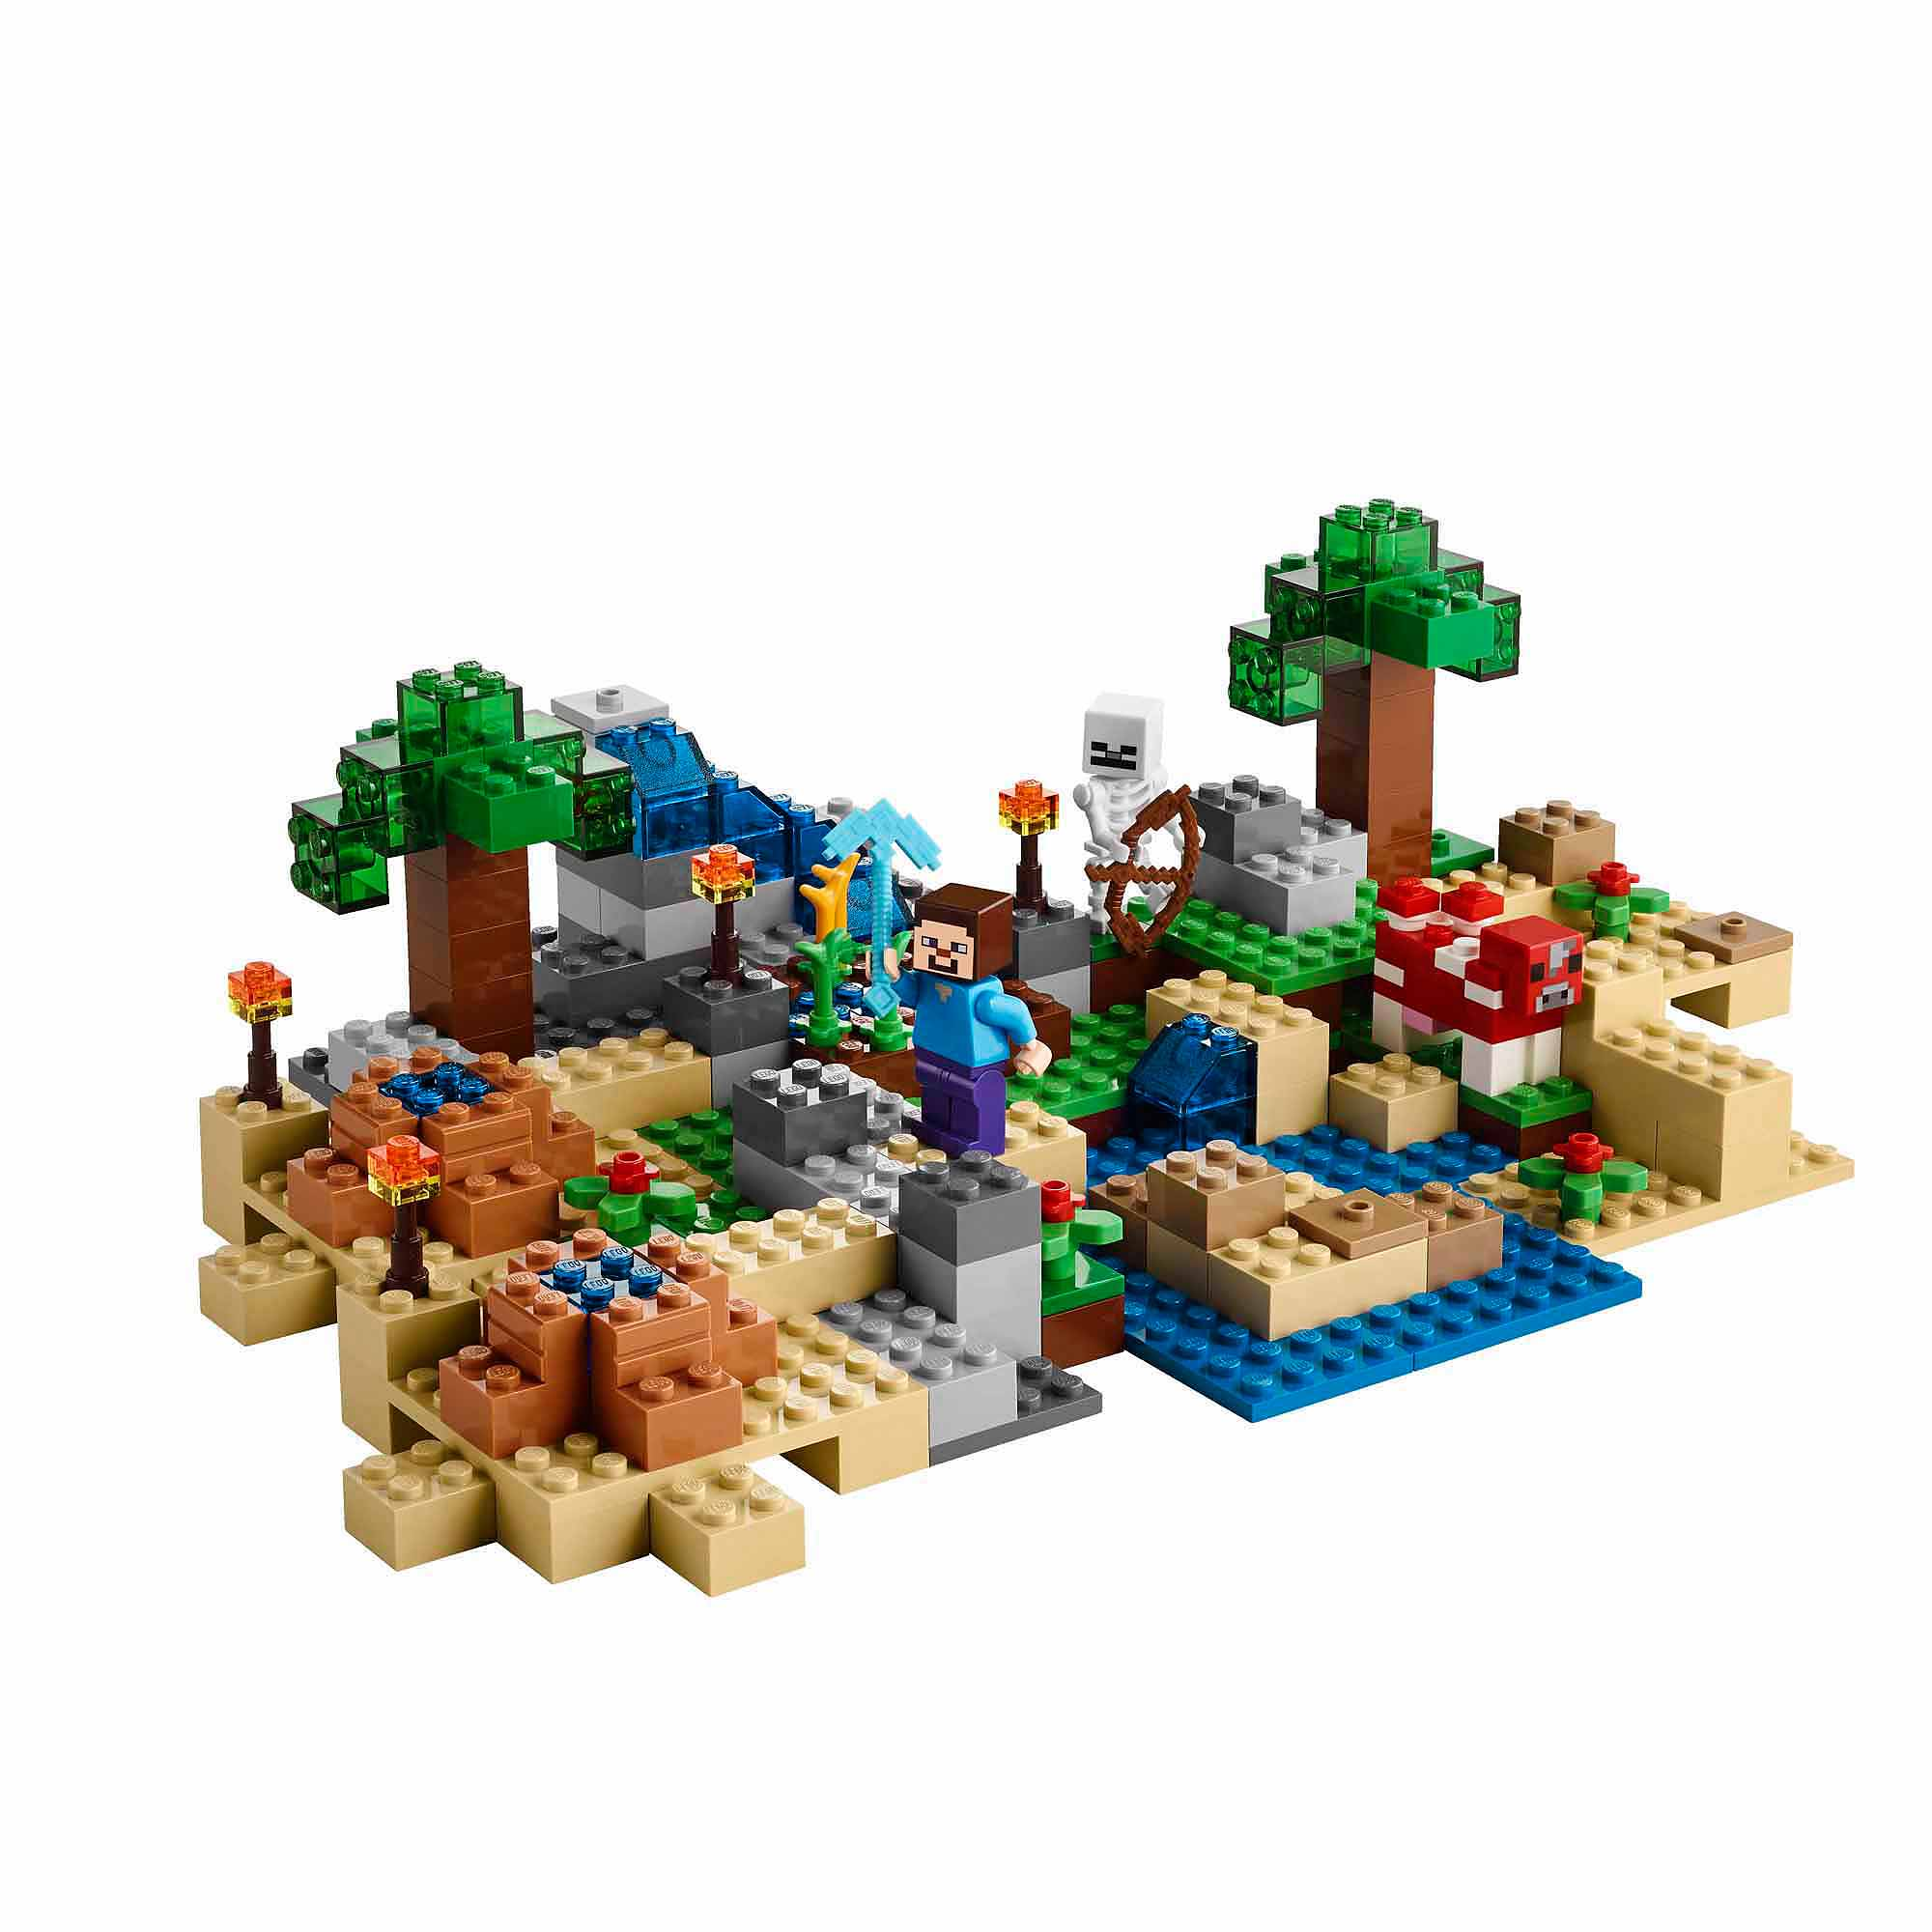 Lego Minecraft Crafting Box by LEGO Systems, Inc.